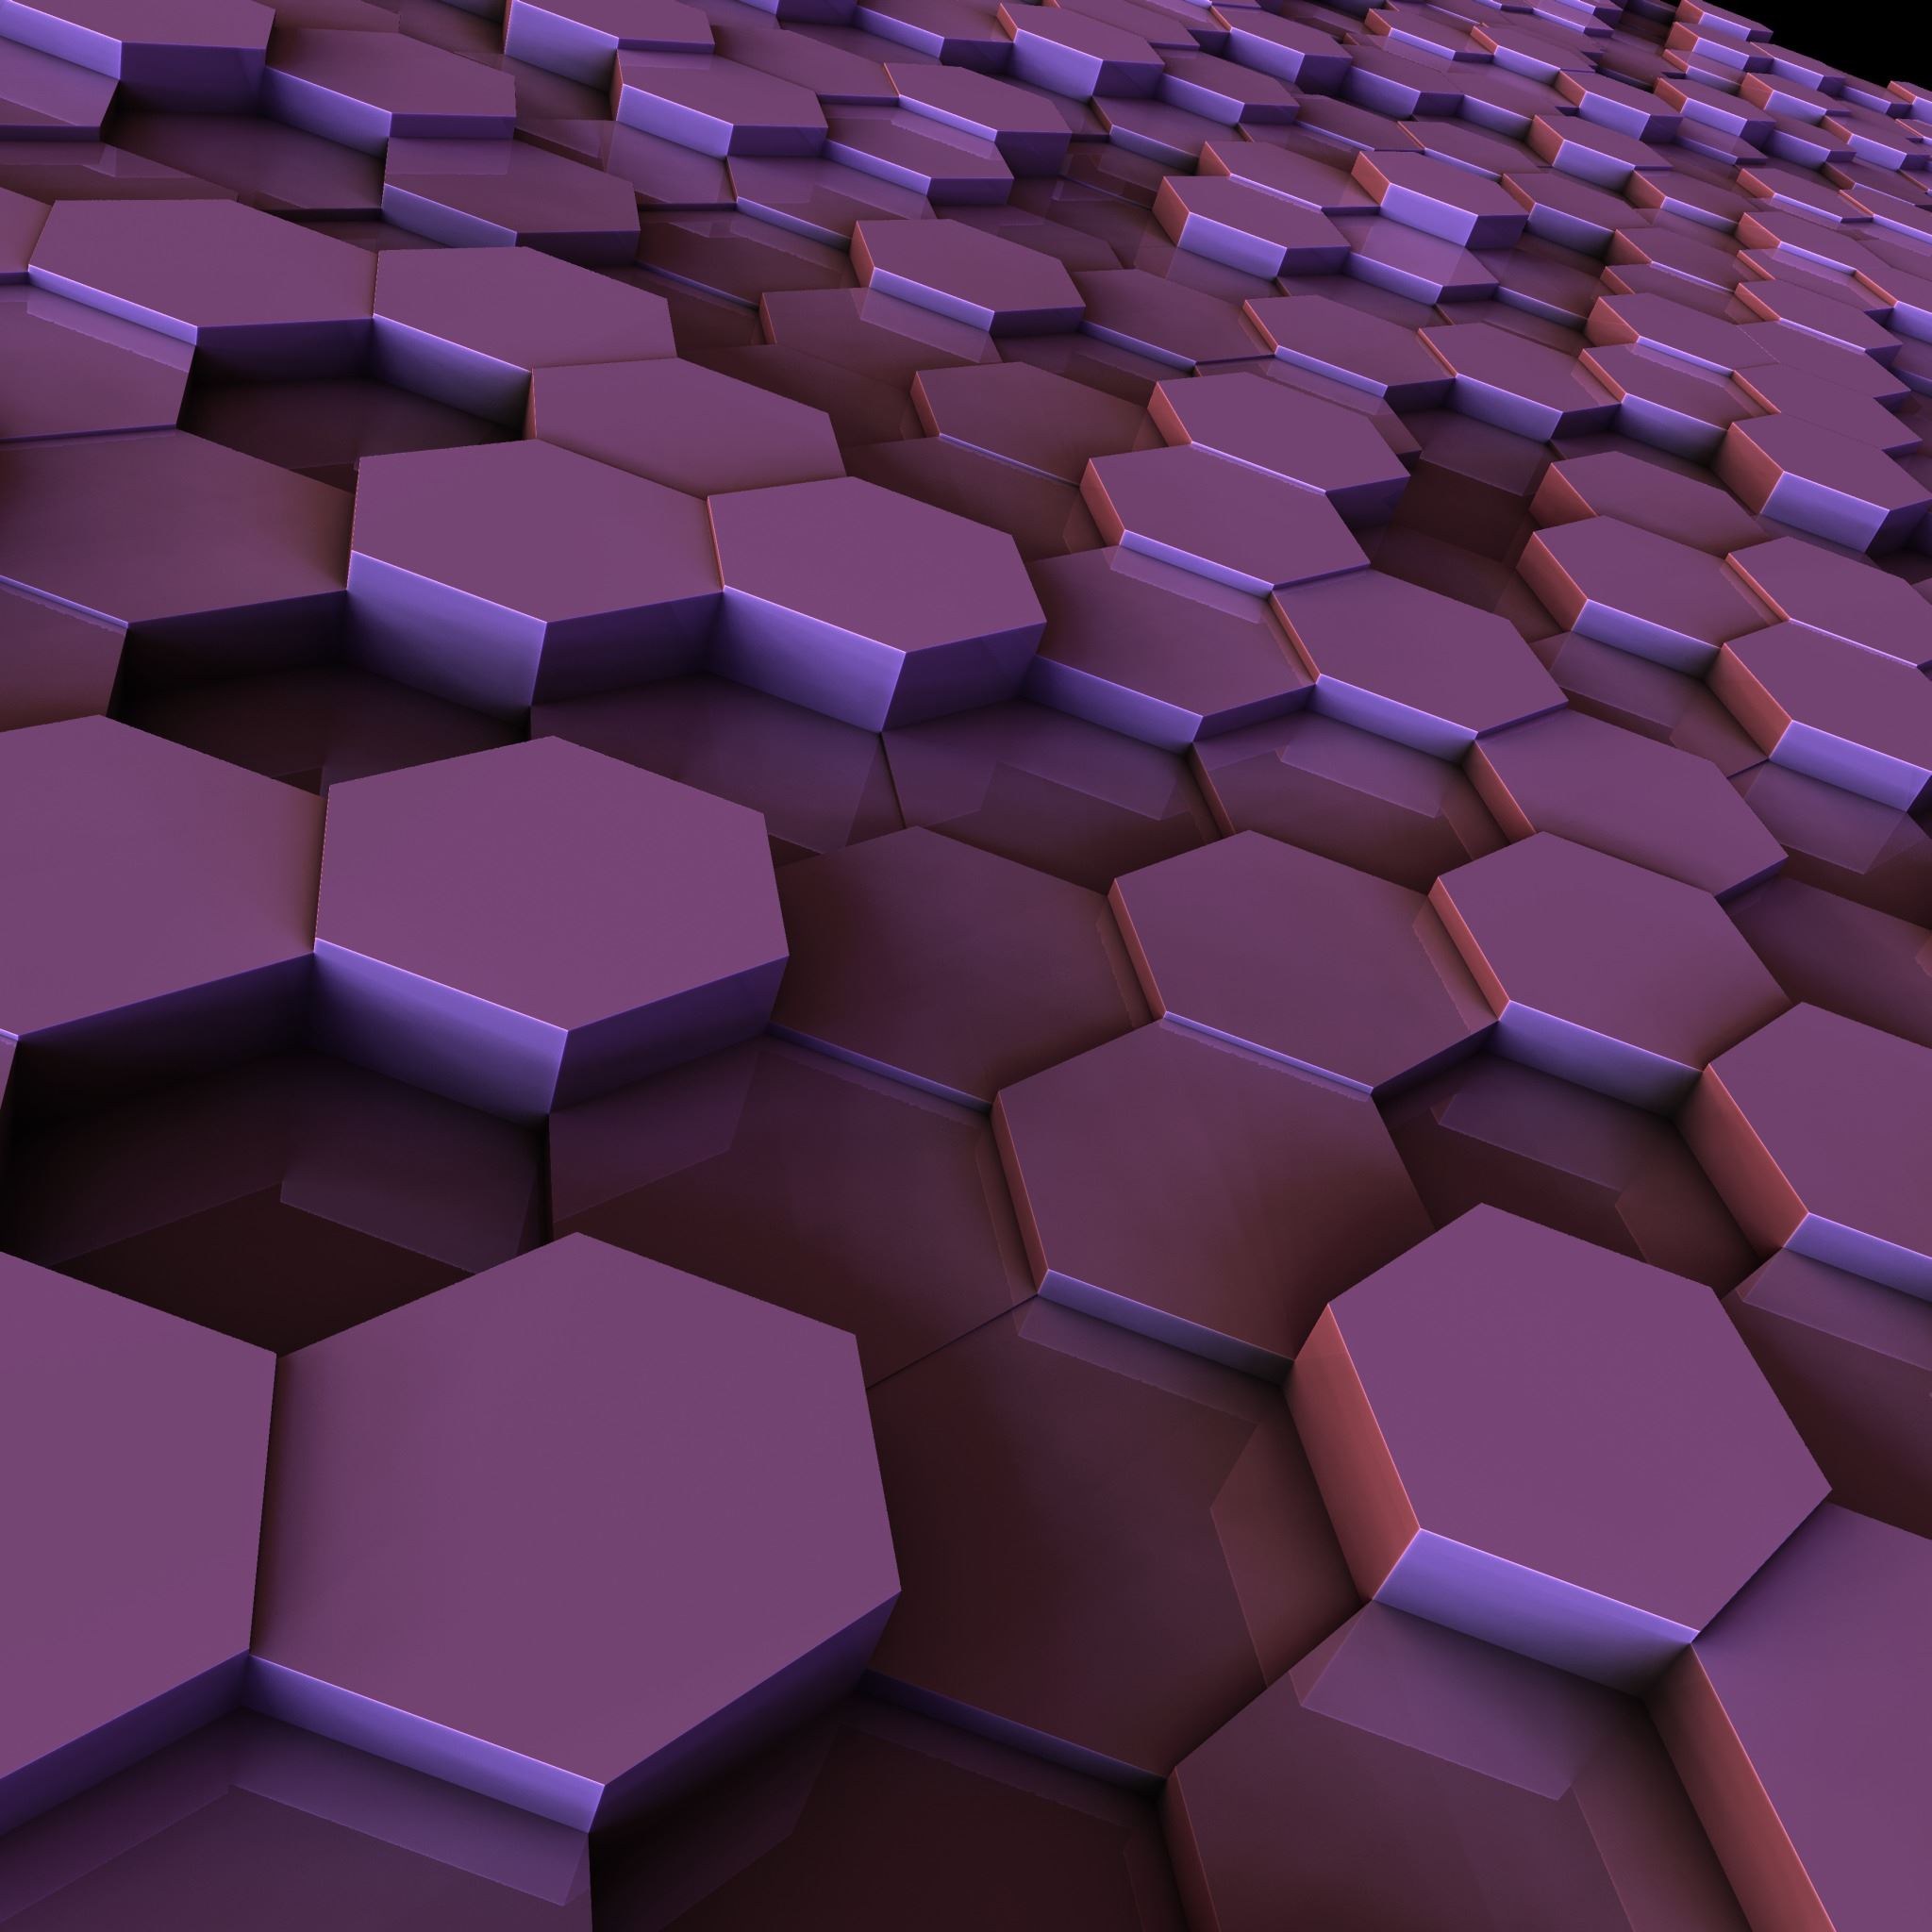 3D Hexagon iPad Air wallpaper